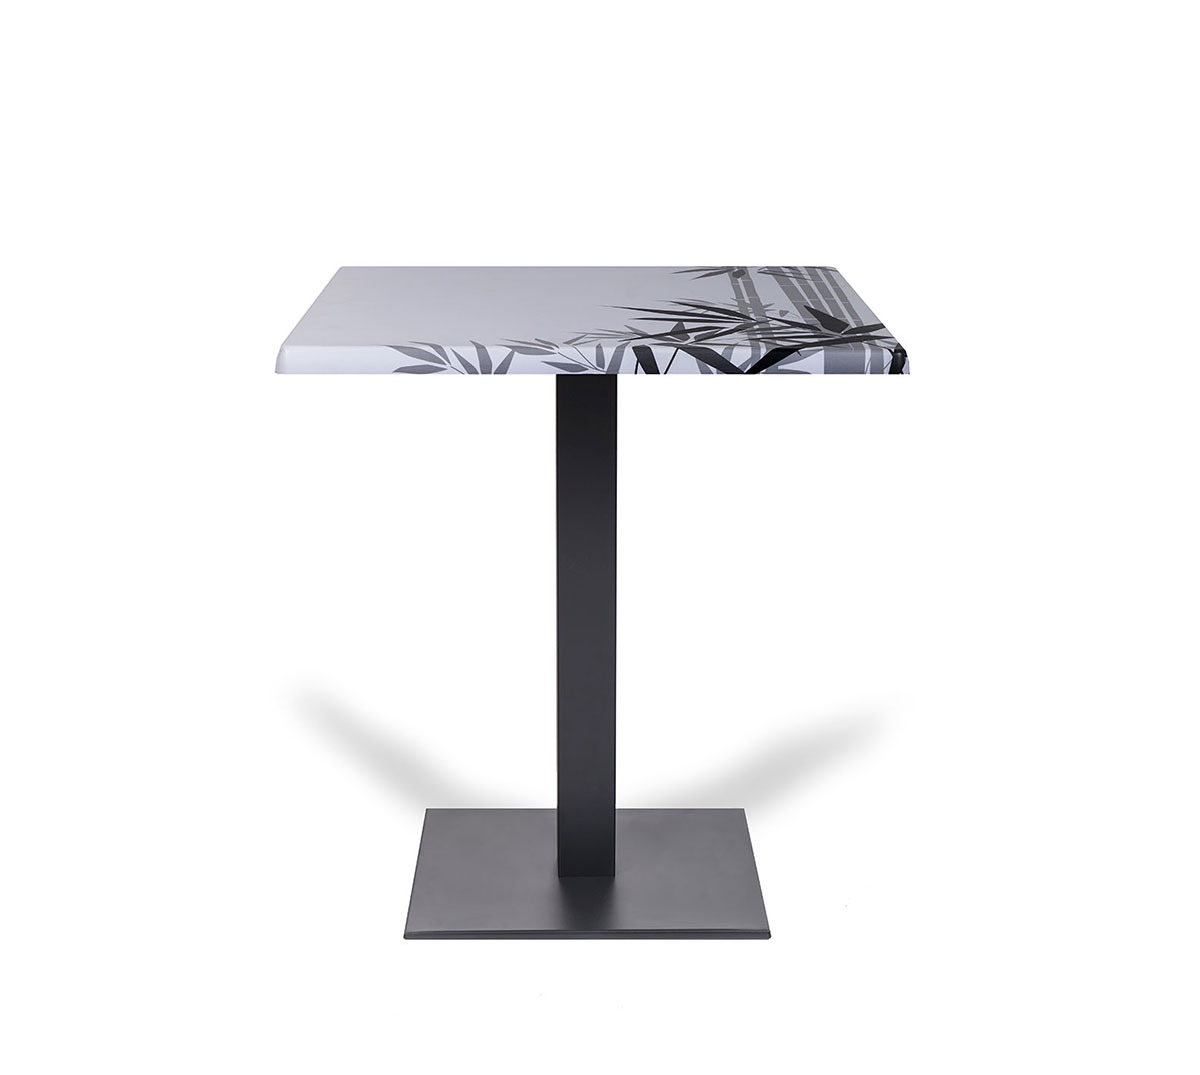 Mesa Sidney a 75 aluminio color grafito tablero top caribe